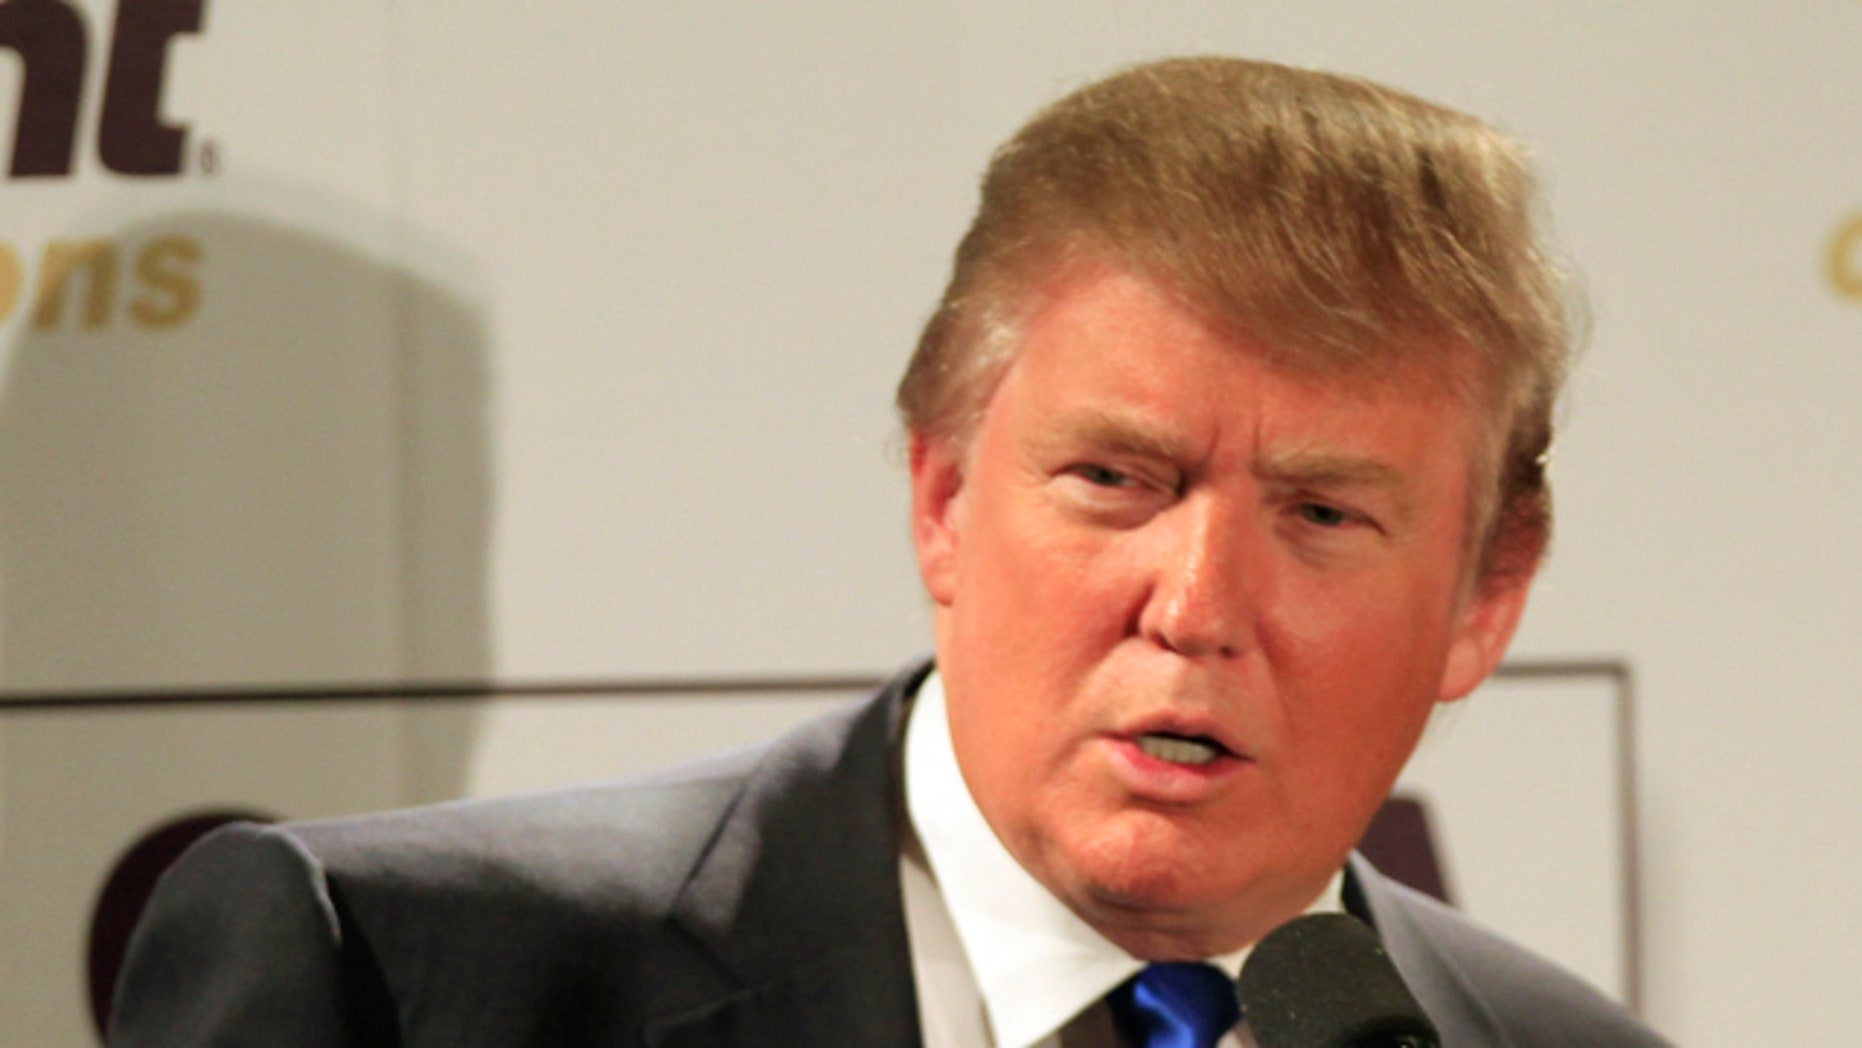 May 11: Republican Donald Trump speaks at the Greater Nashua Chamber of Commerce in Nashua, N.H. Trump. Trump announced May 16 he will not pursue the 2012 Republican nomination for president.